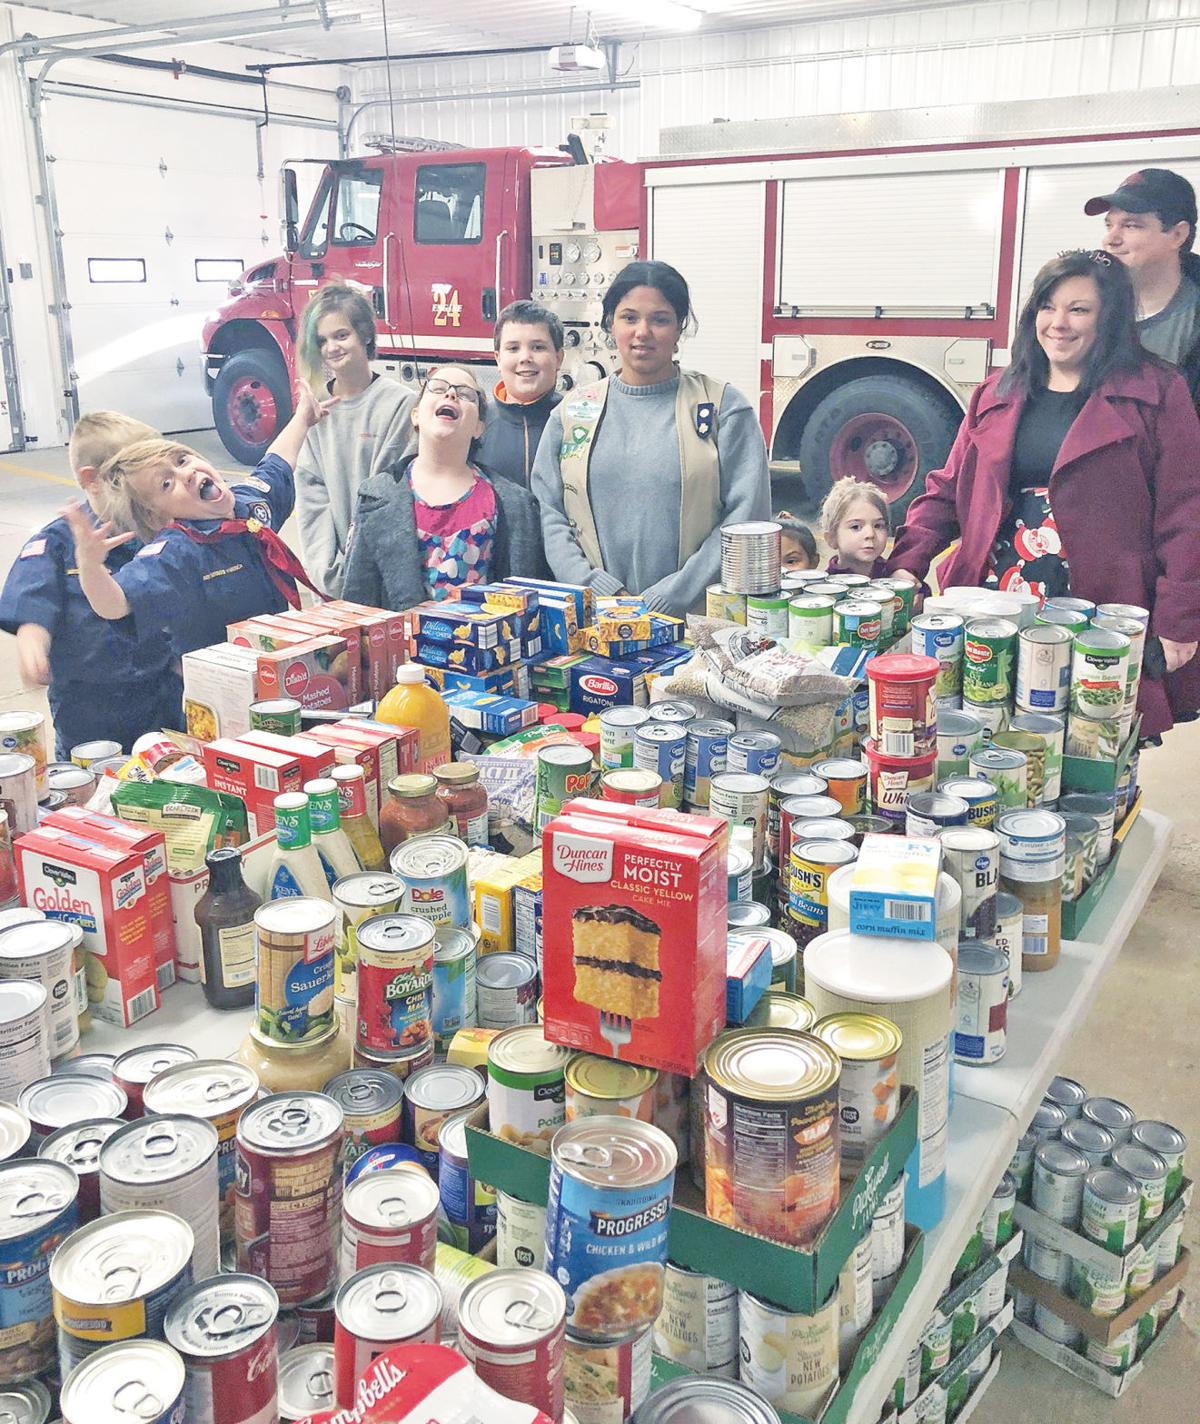 Food baskets making impact in community